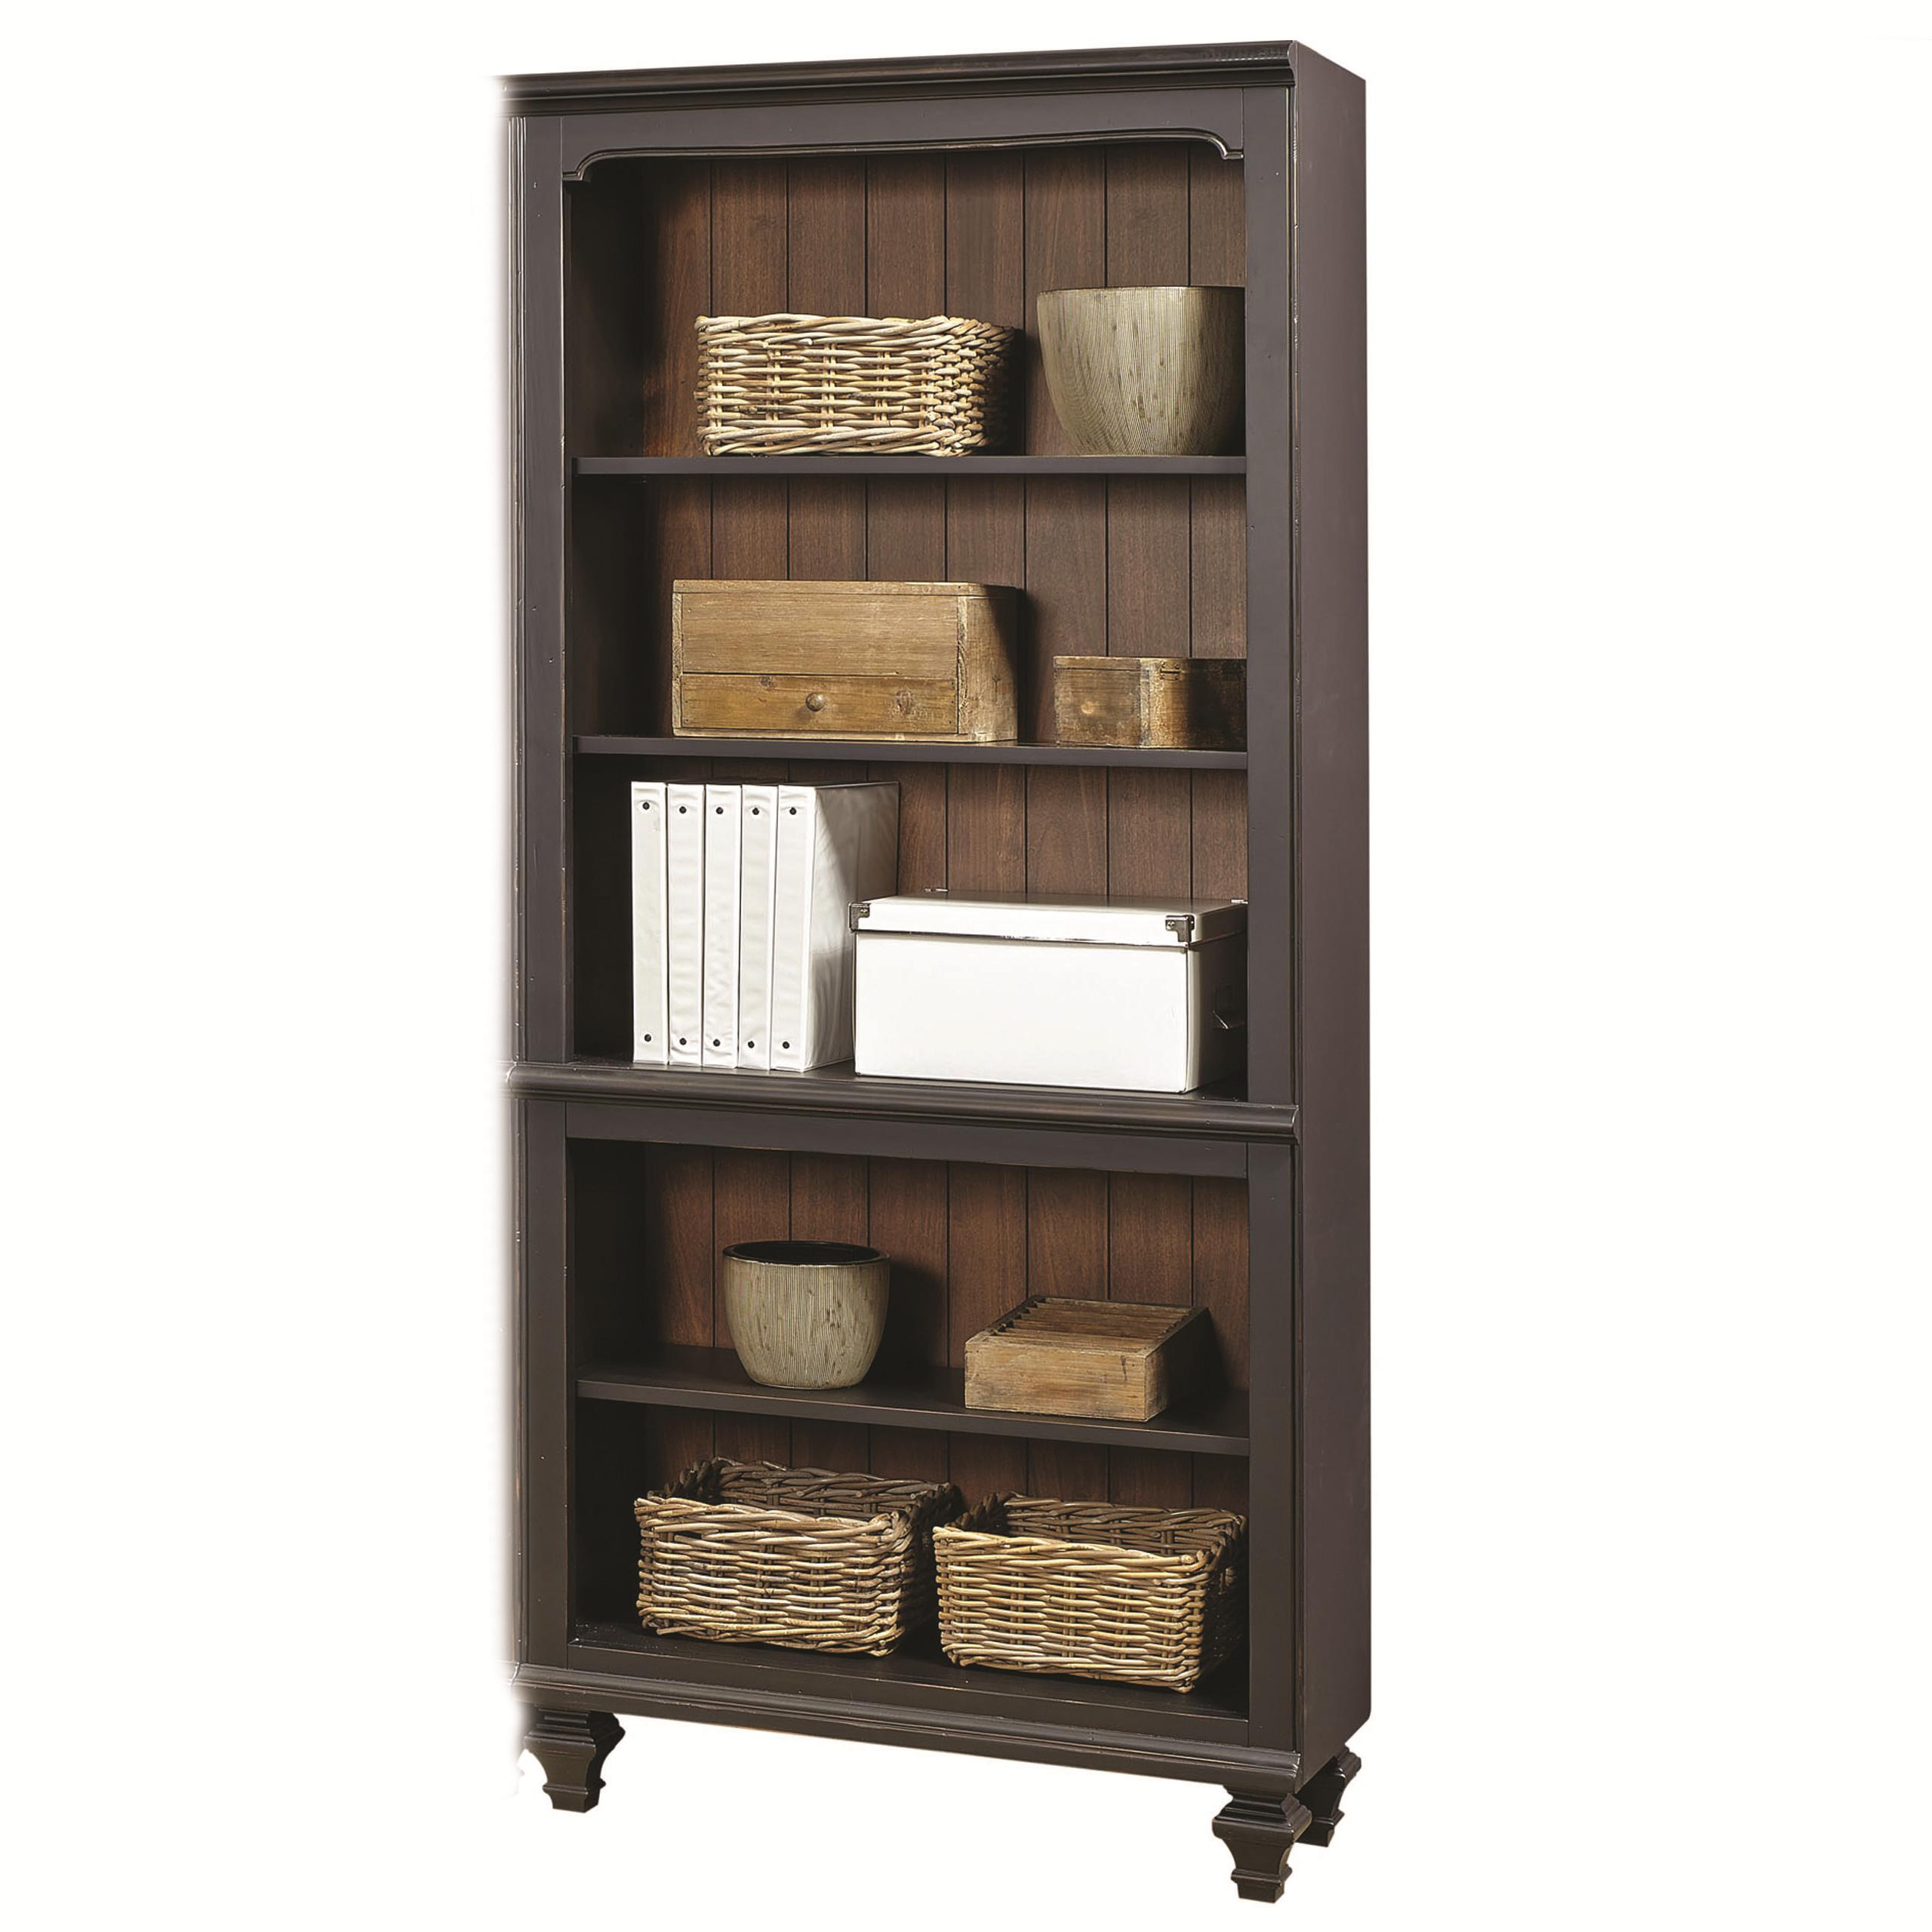 Aspenhome Ravenwood Bookcase - Item Number: I65-333